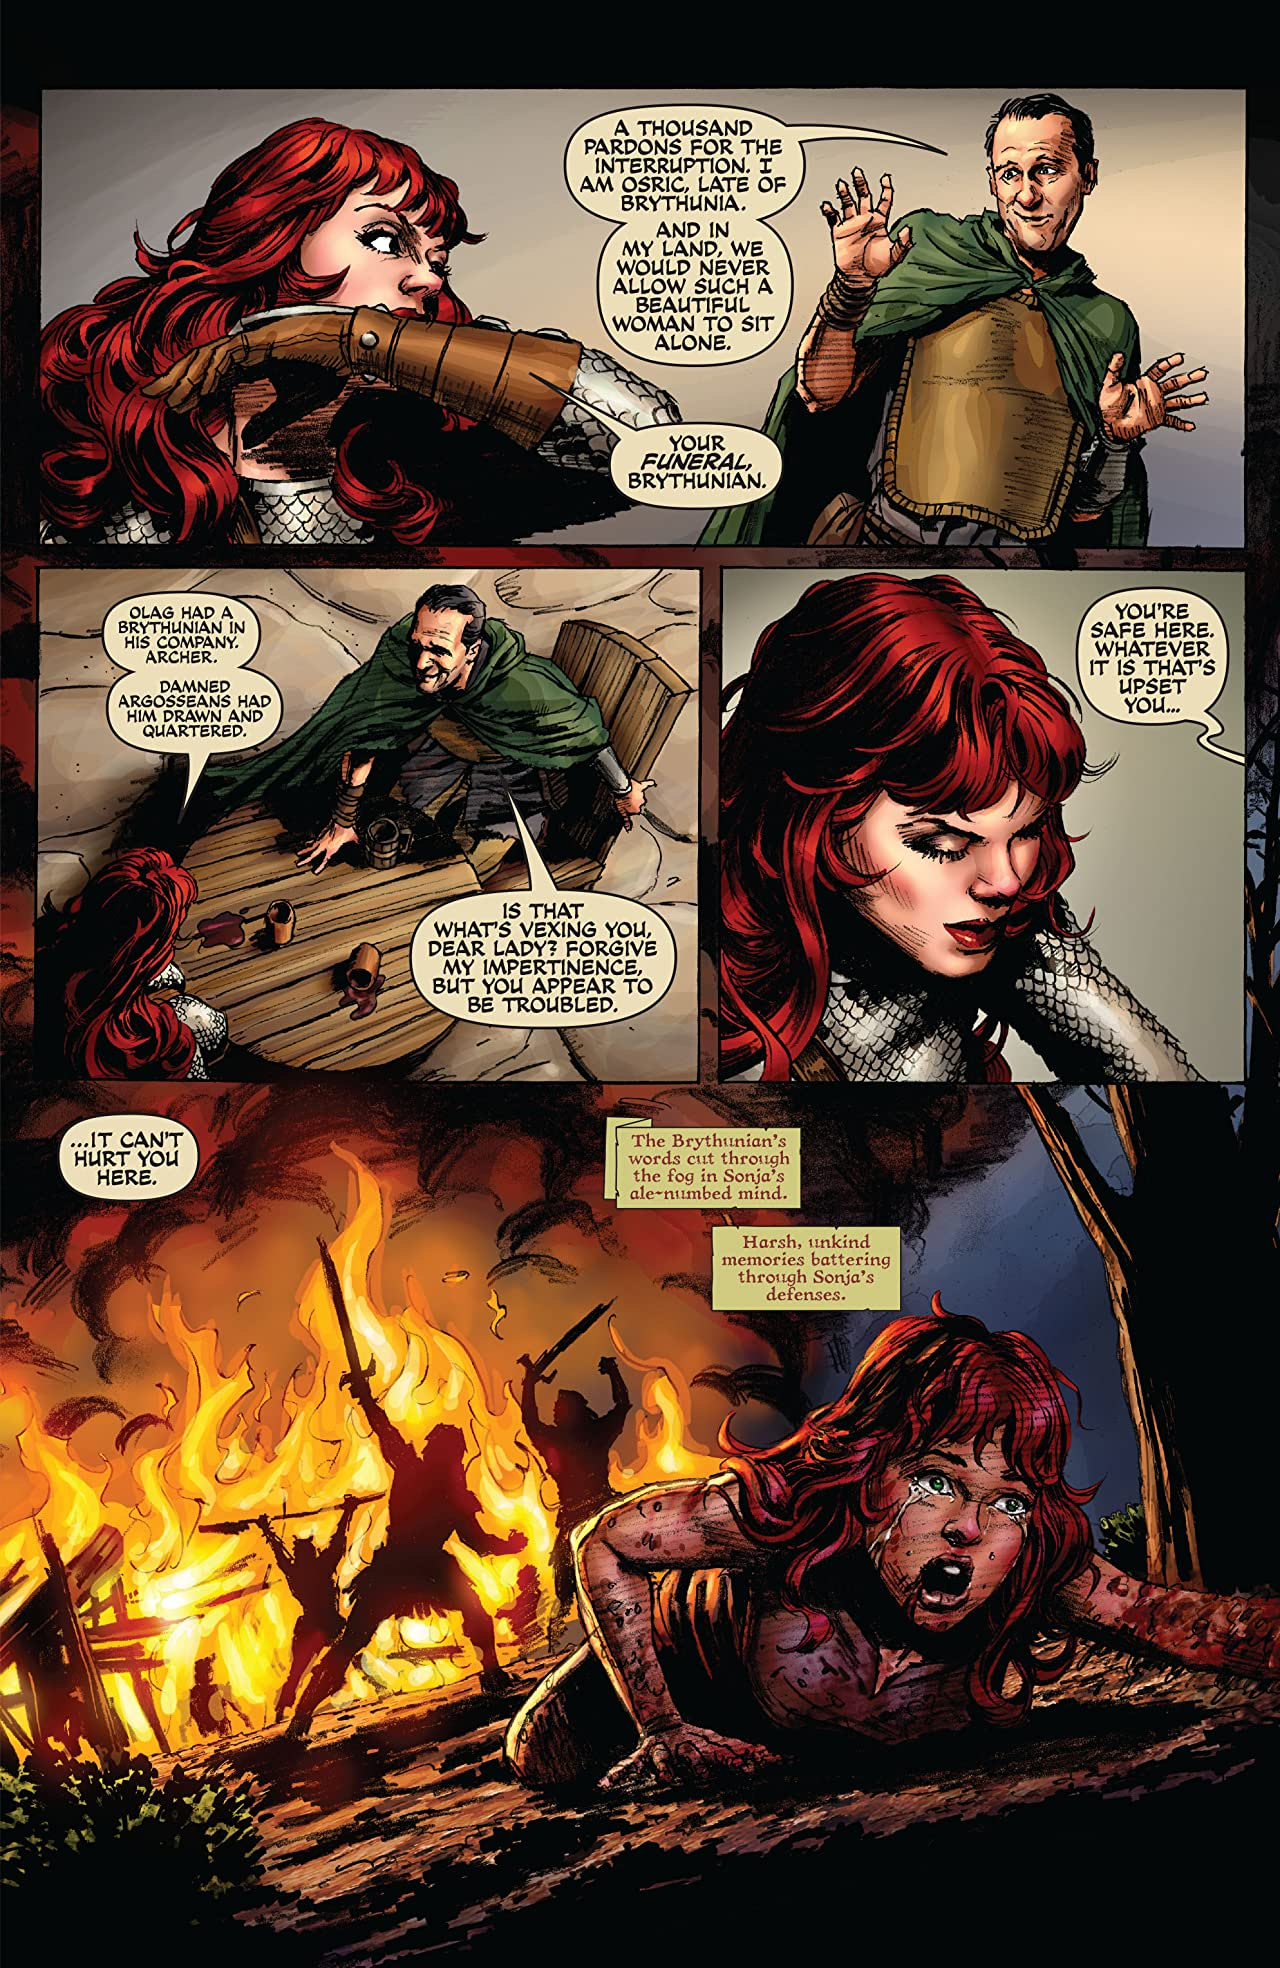 Red Sonja: She-Devil With a Sword #55